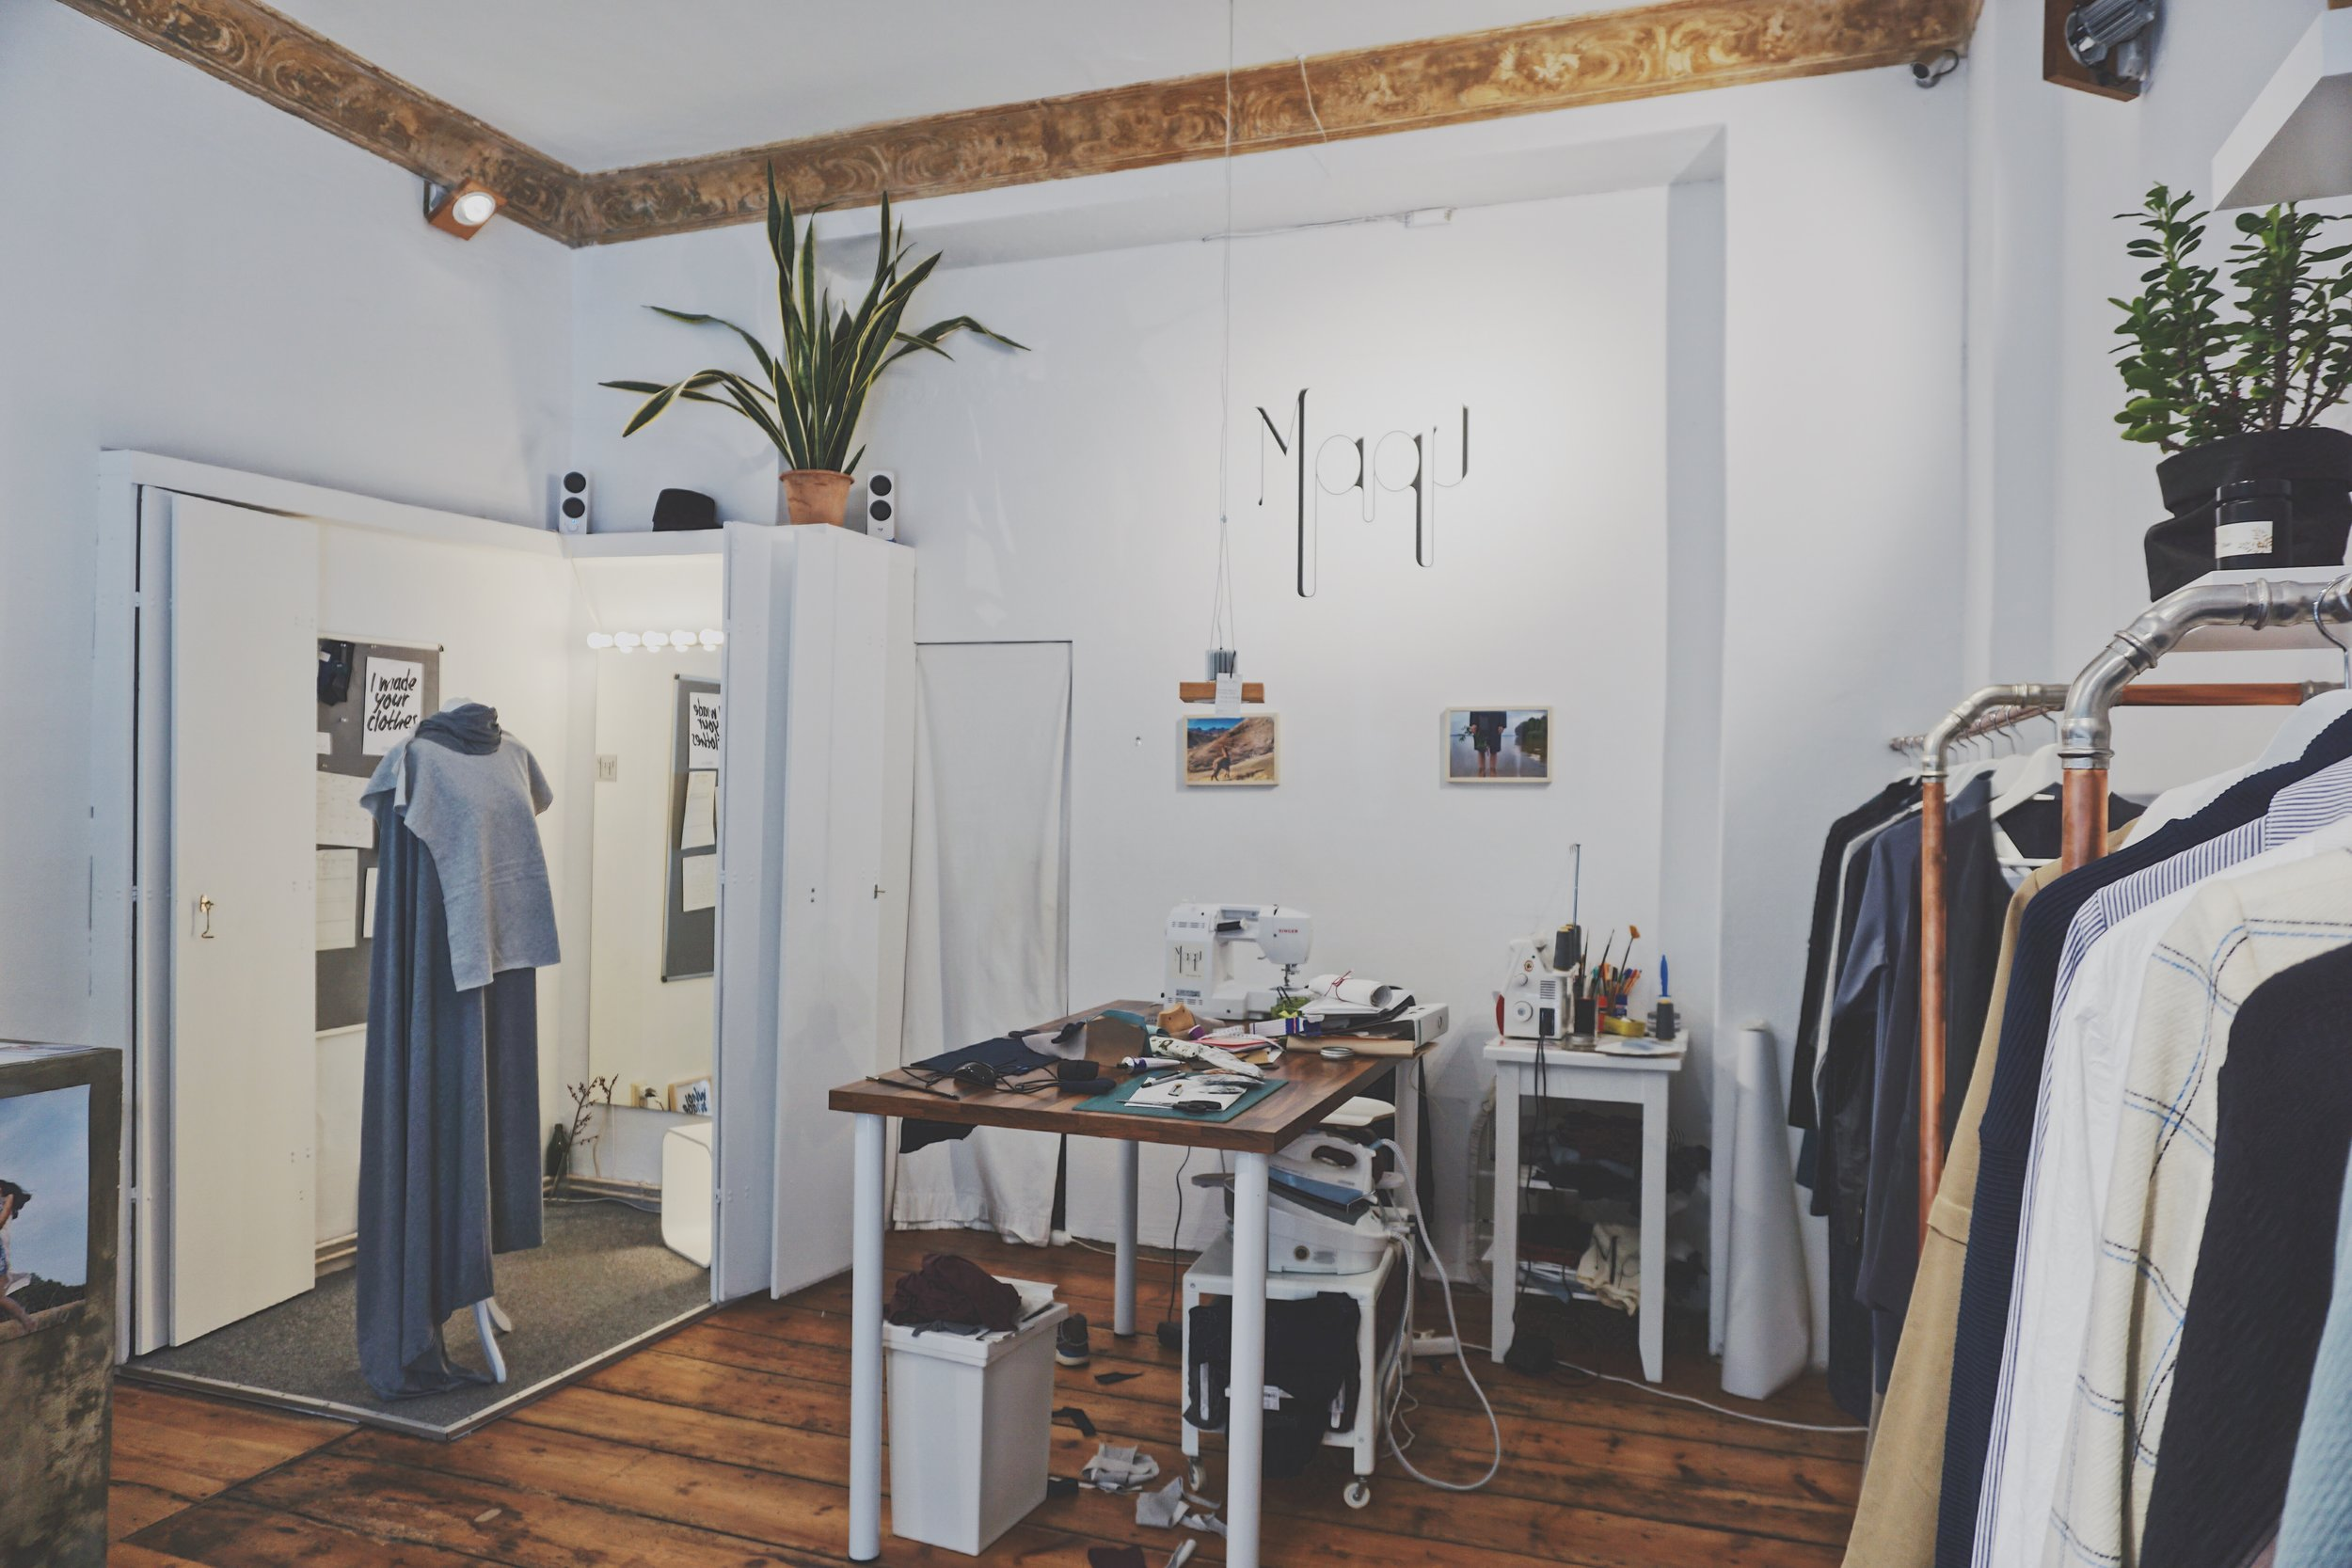 Maqu sustainable fashion boutique and studio in Germany